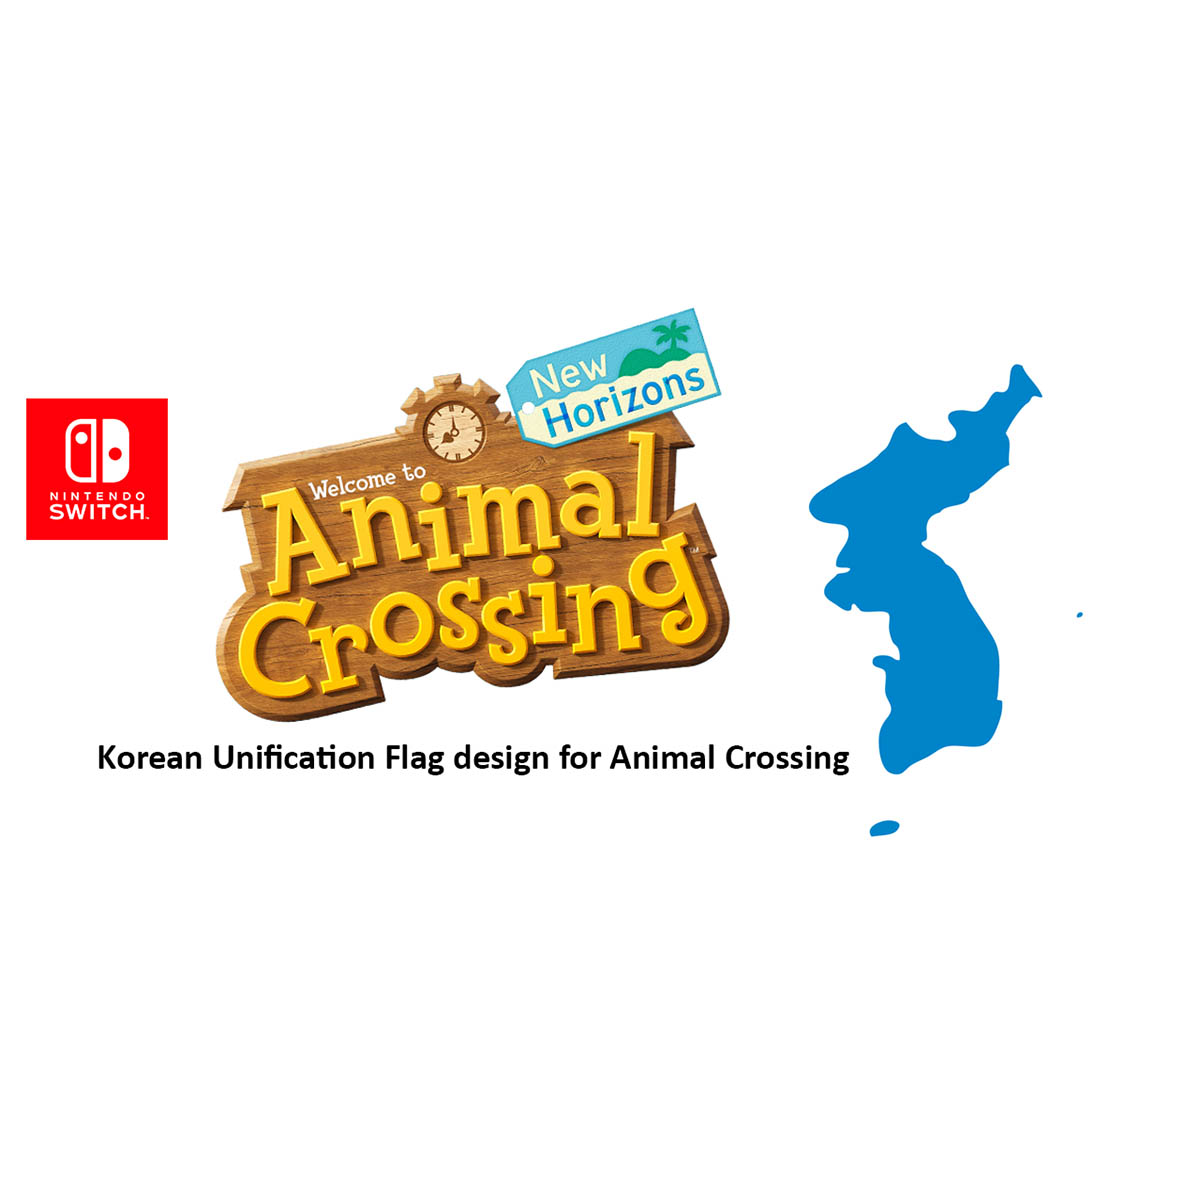 Animal Crossing – Korean Unification Shirt and Flag 동물의 숲(Animal Crossing)- 통일기와 통일셔츠